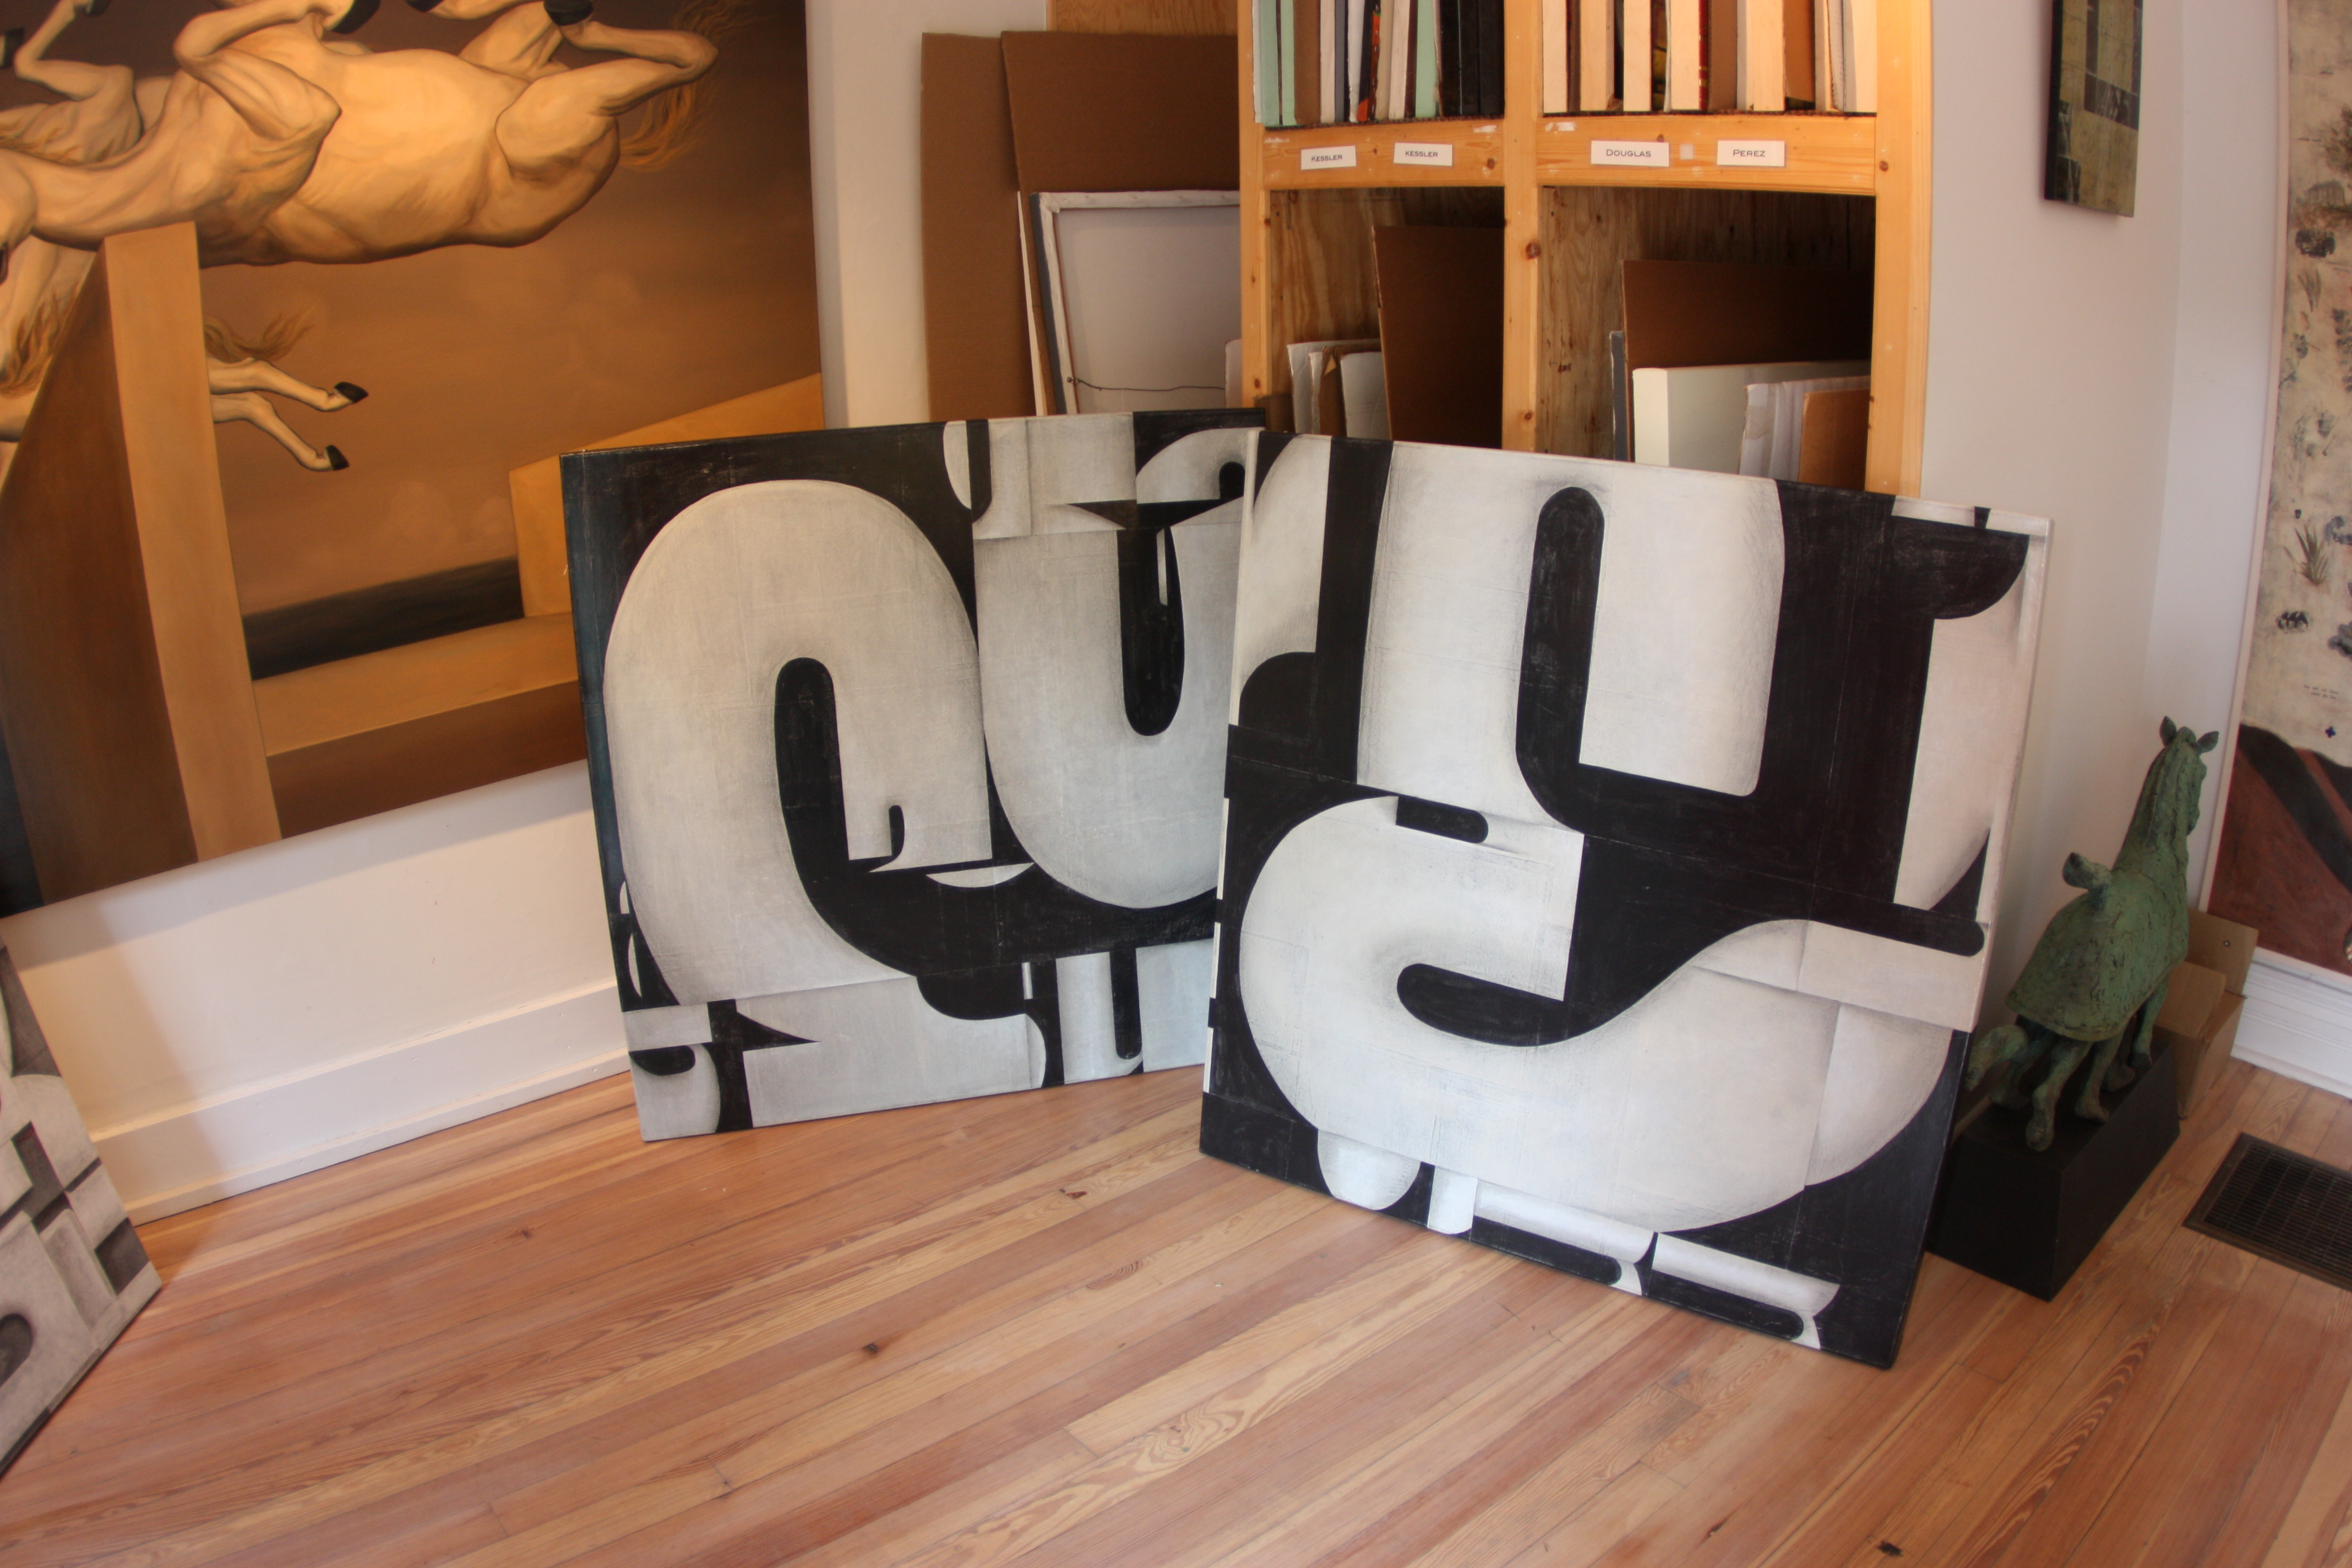 new inventory by Cecil Touchon at Nuart Gallery in Santa Fe, New Mexico